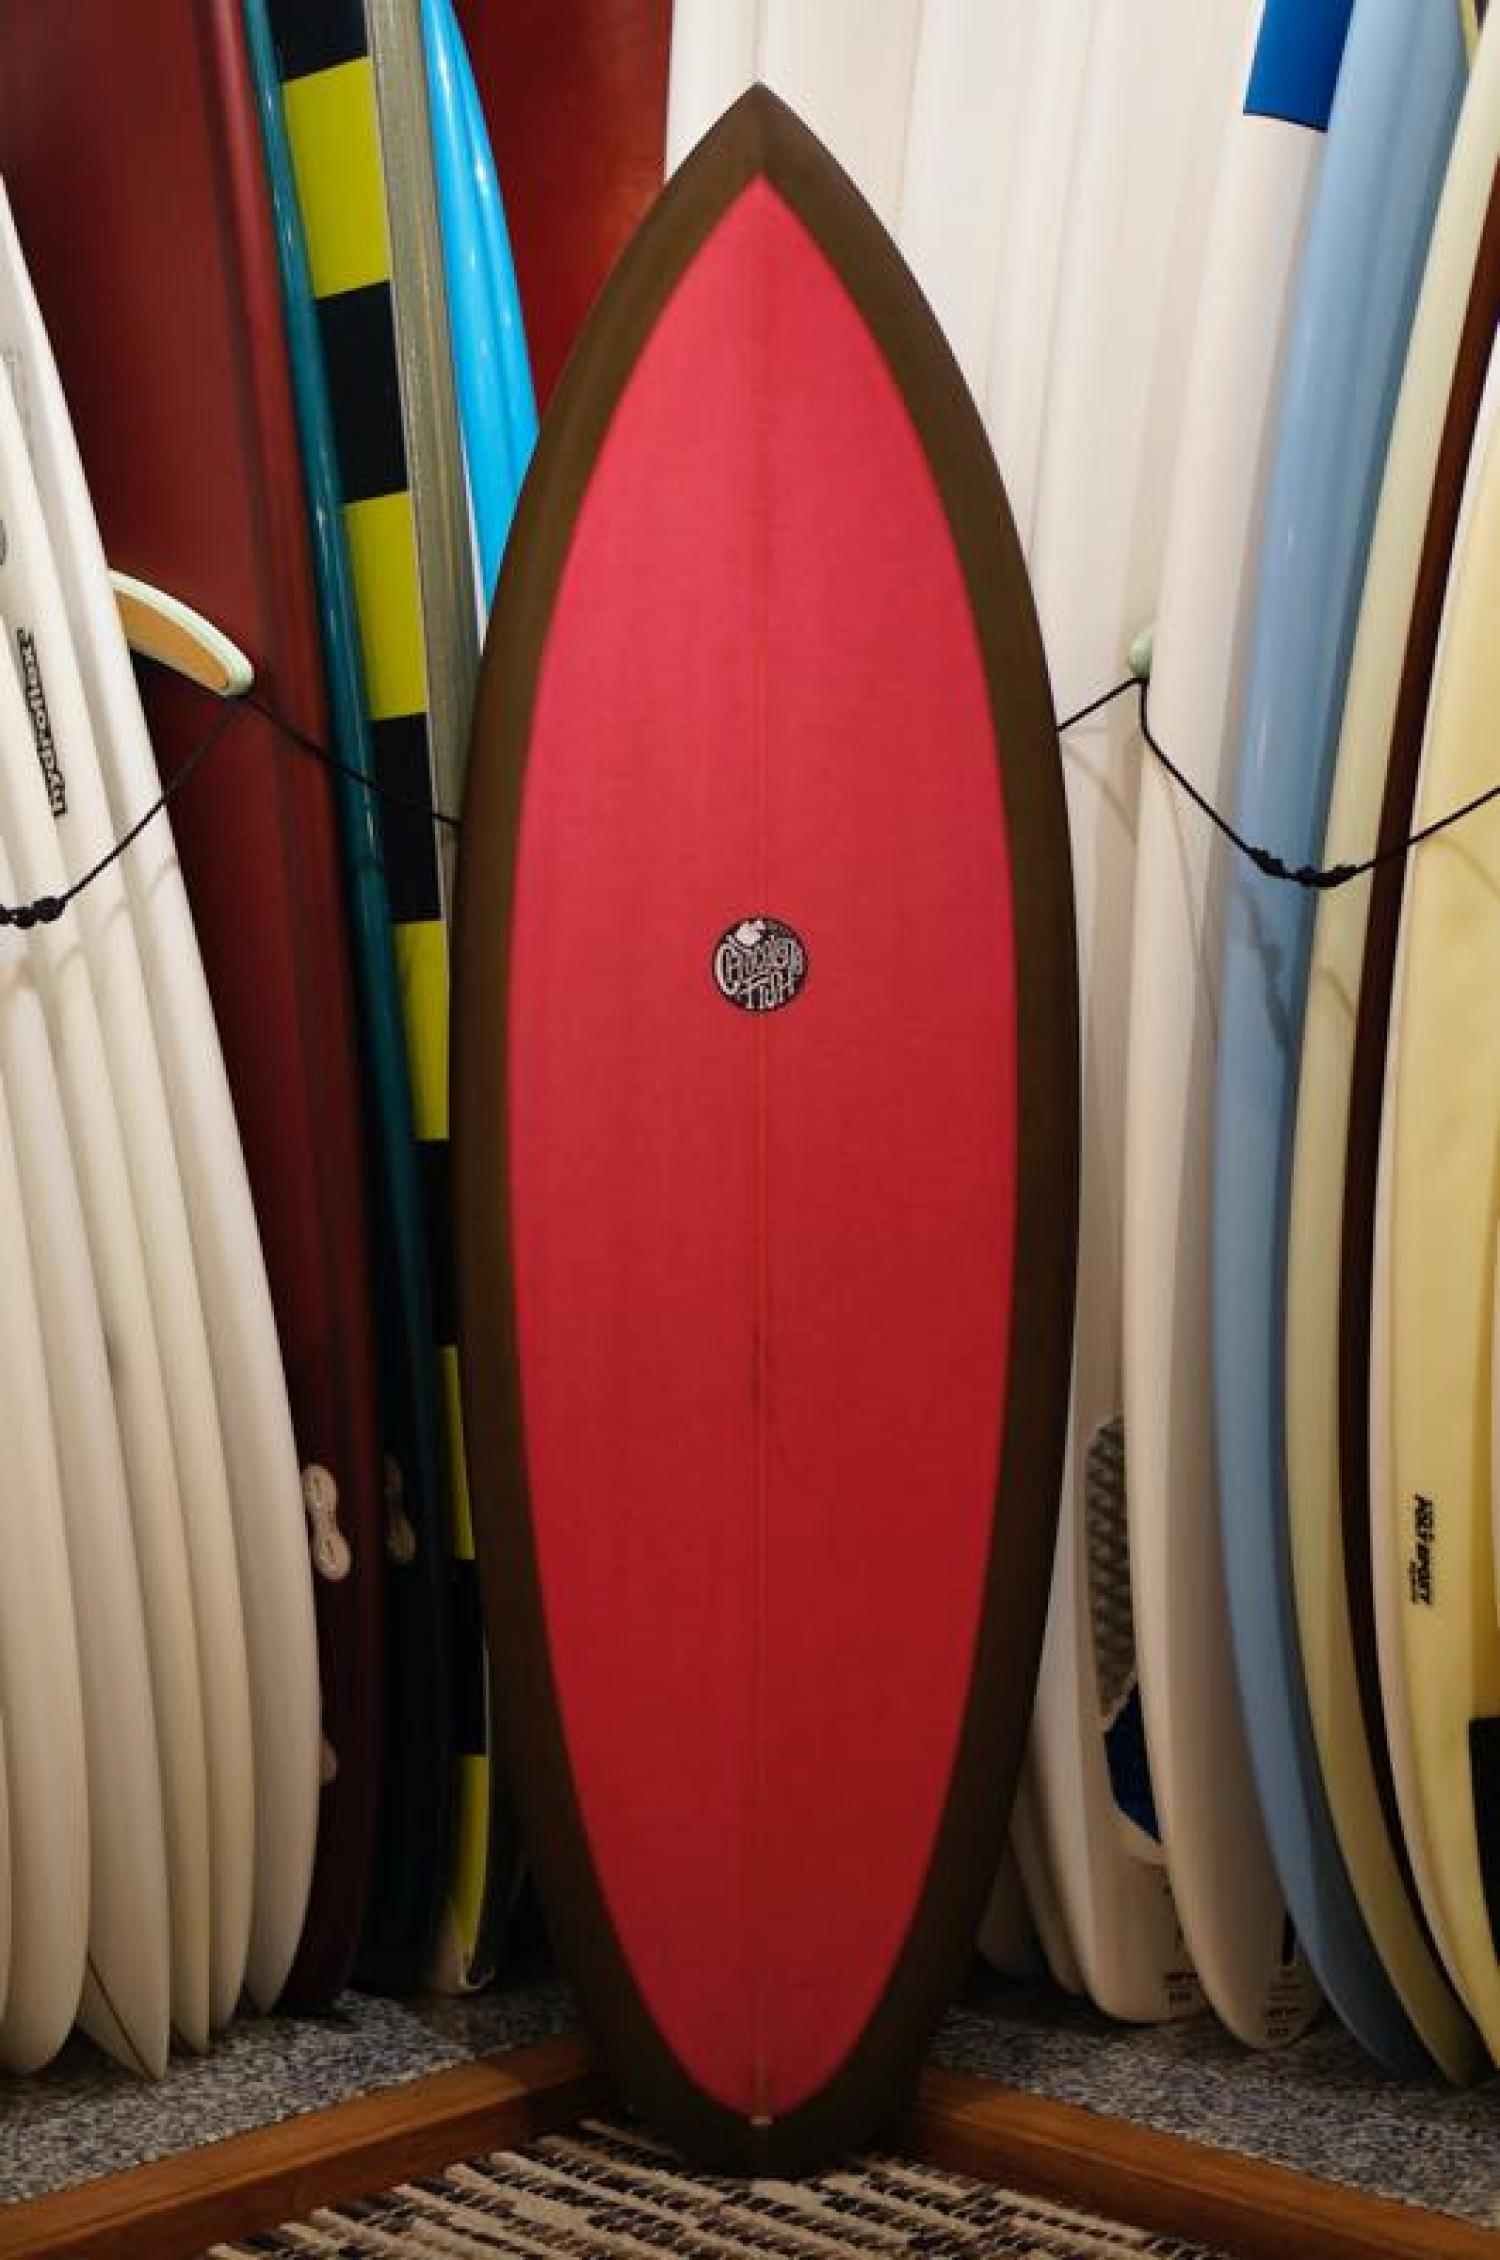 Chocolate Fish Surfboards Cosmic Fonder 5.6